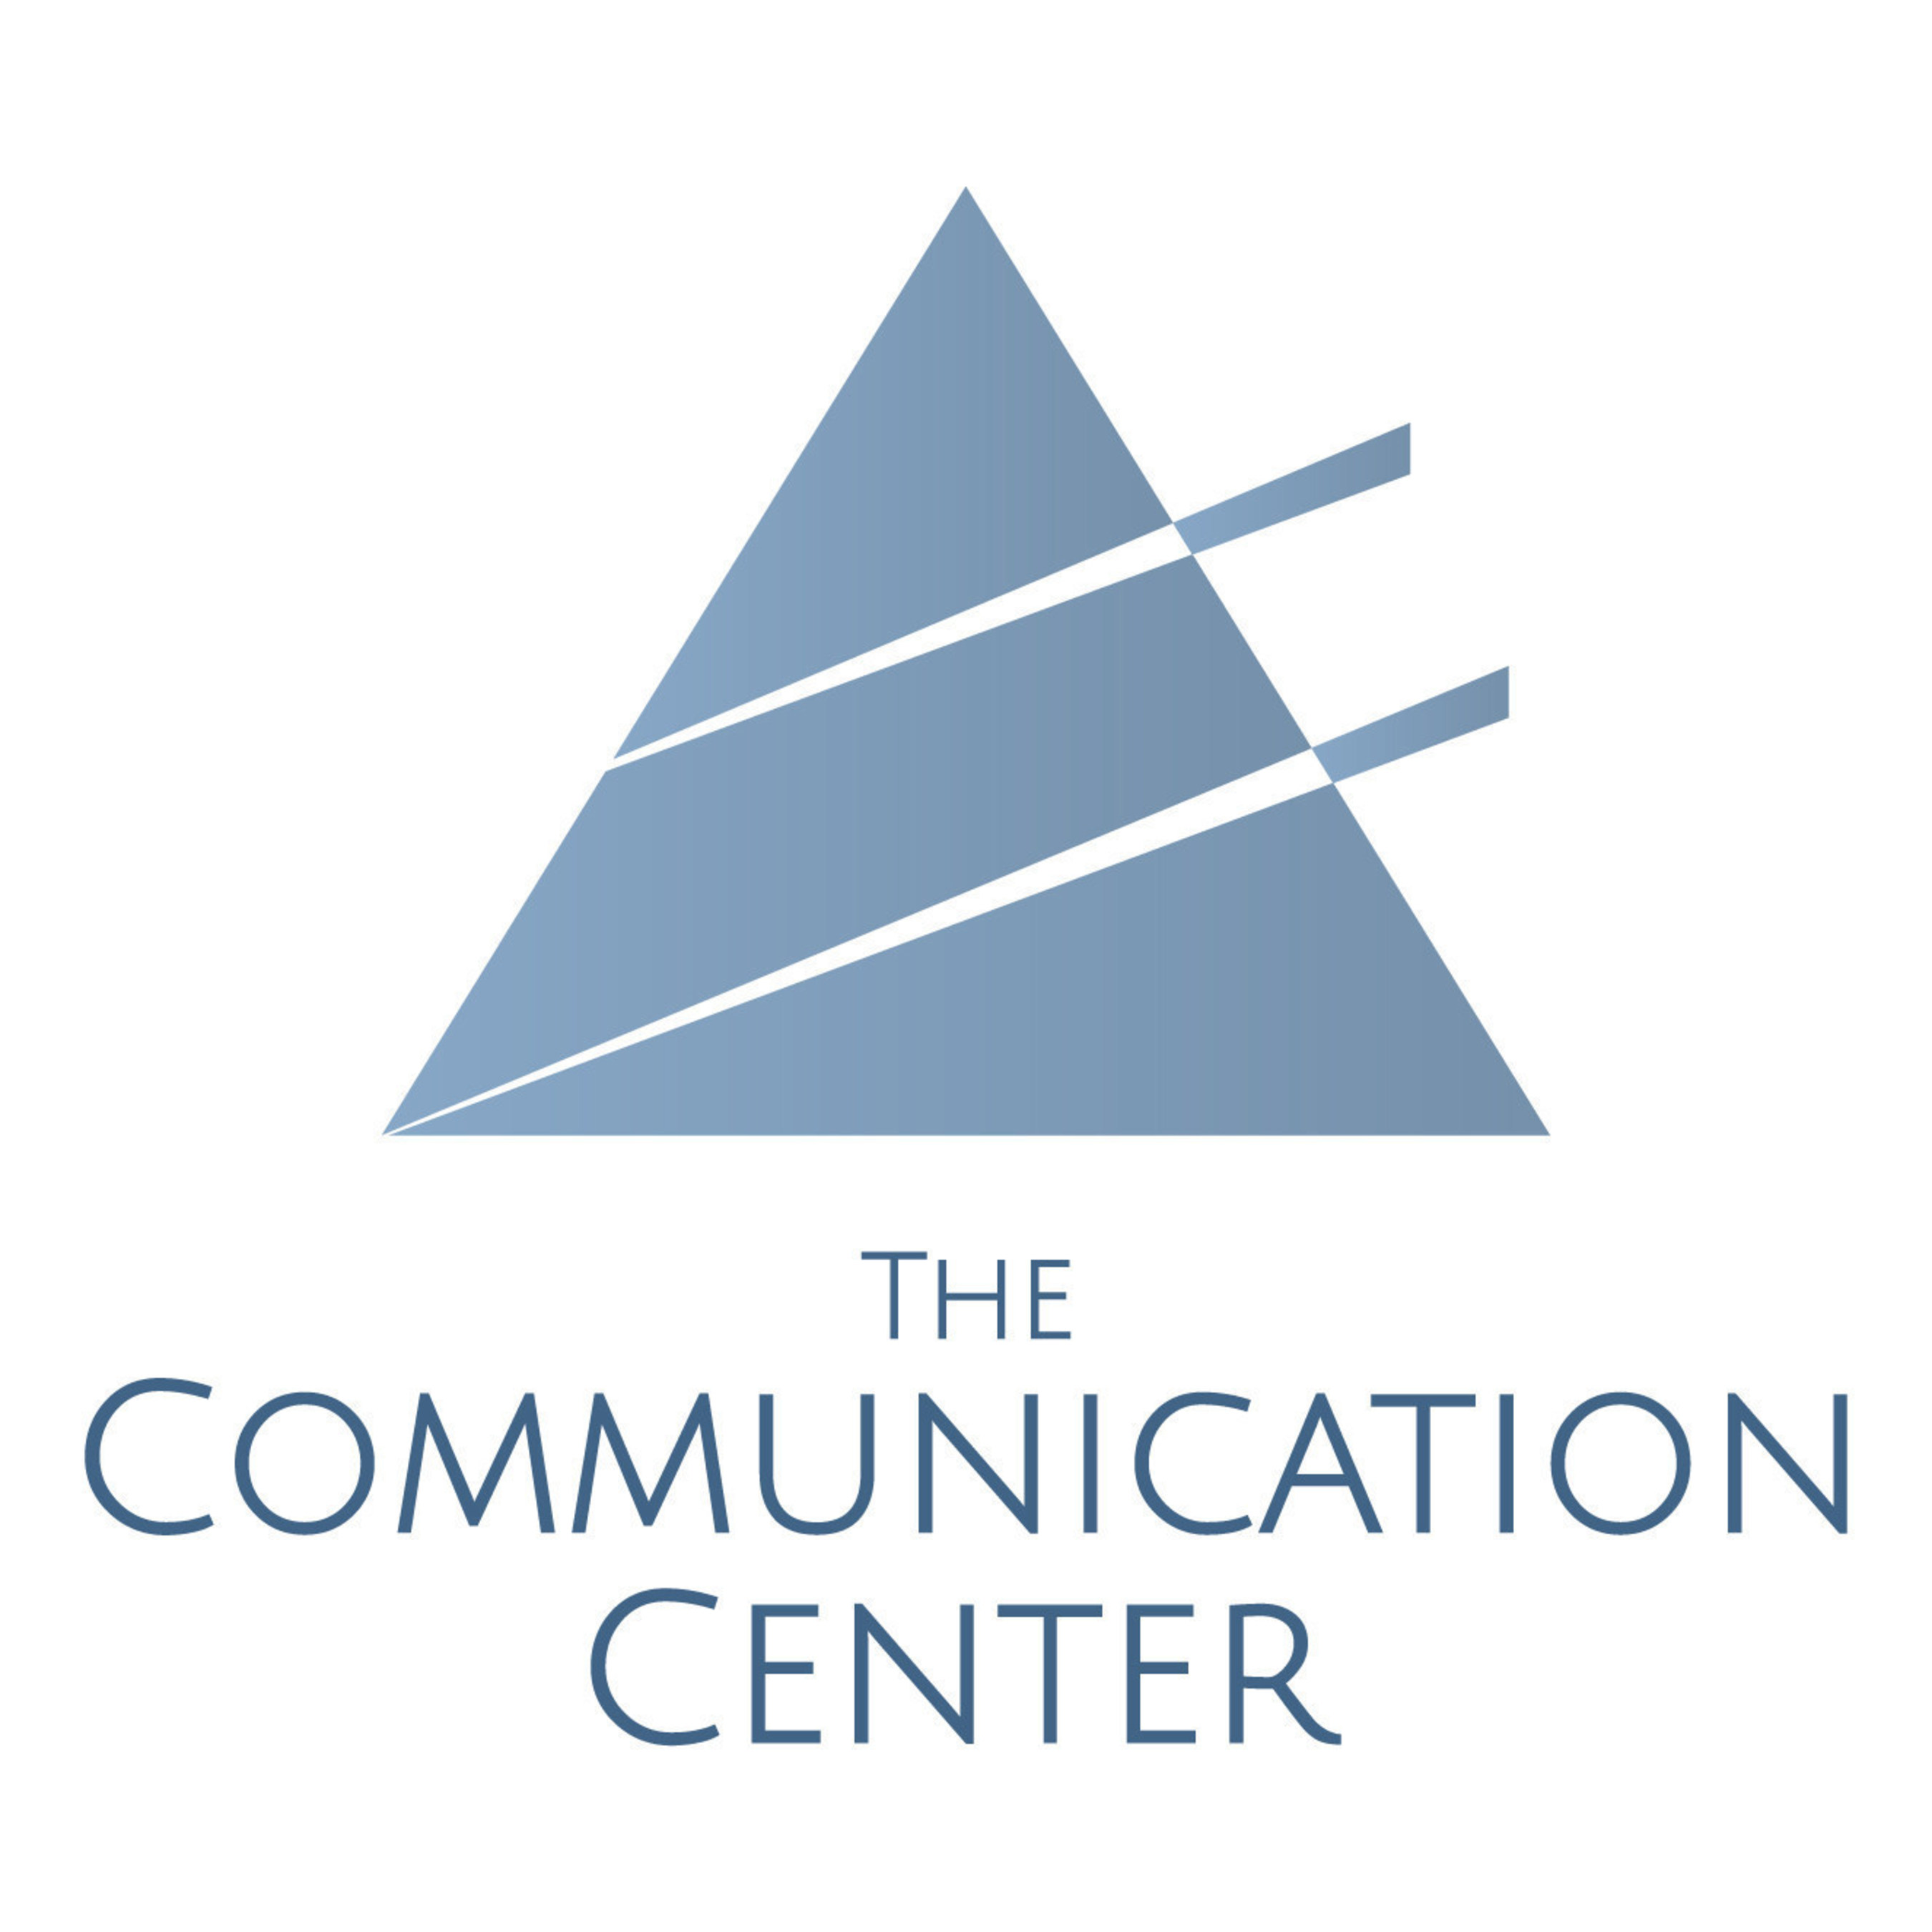 The Communication Center produces clear, compelling communicators in real-world settings that test, shape and ...